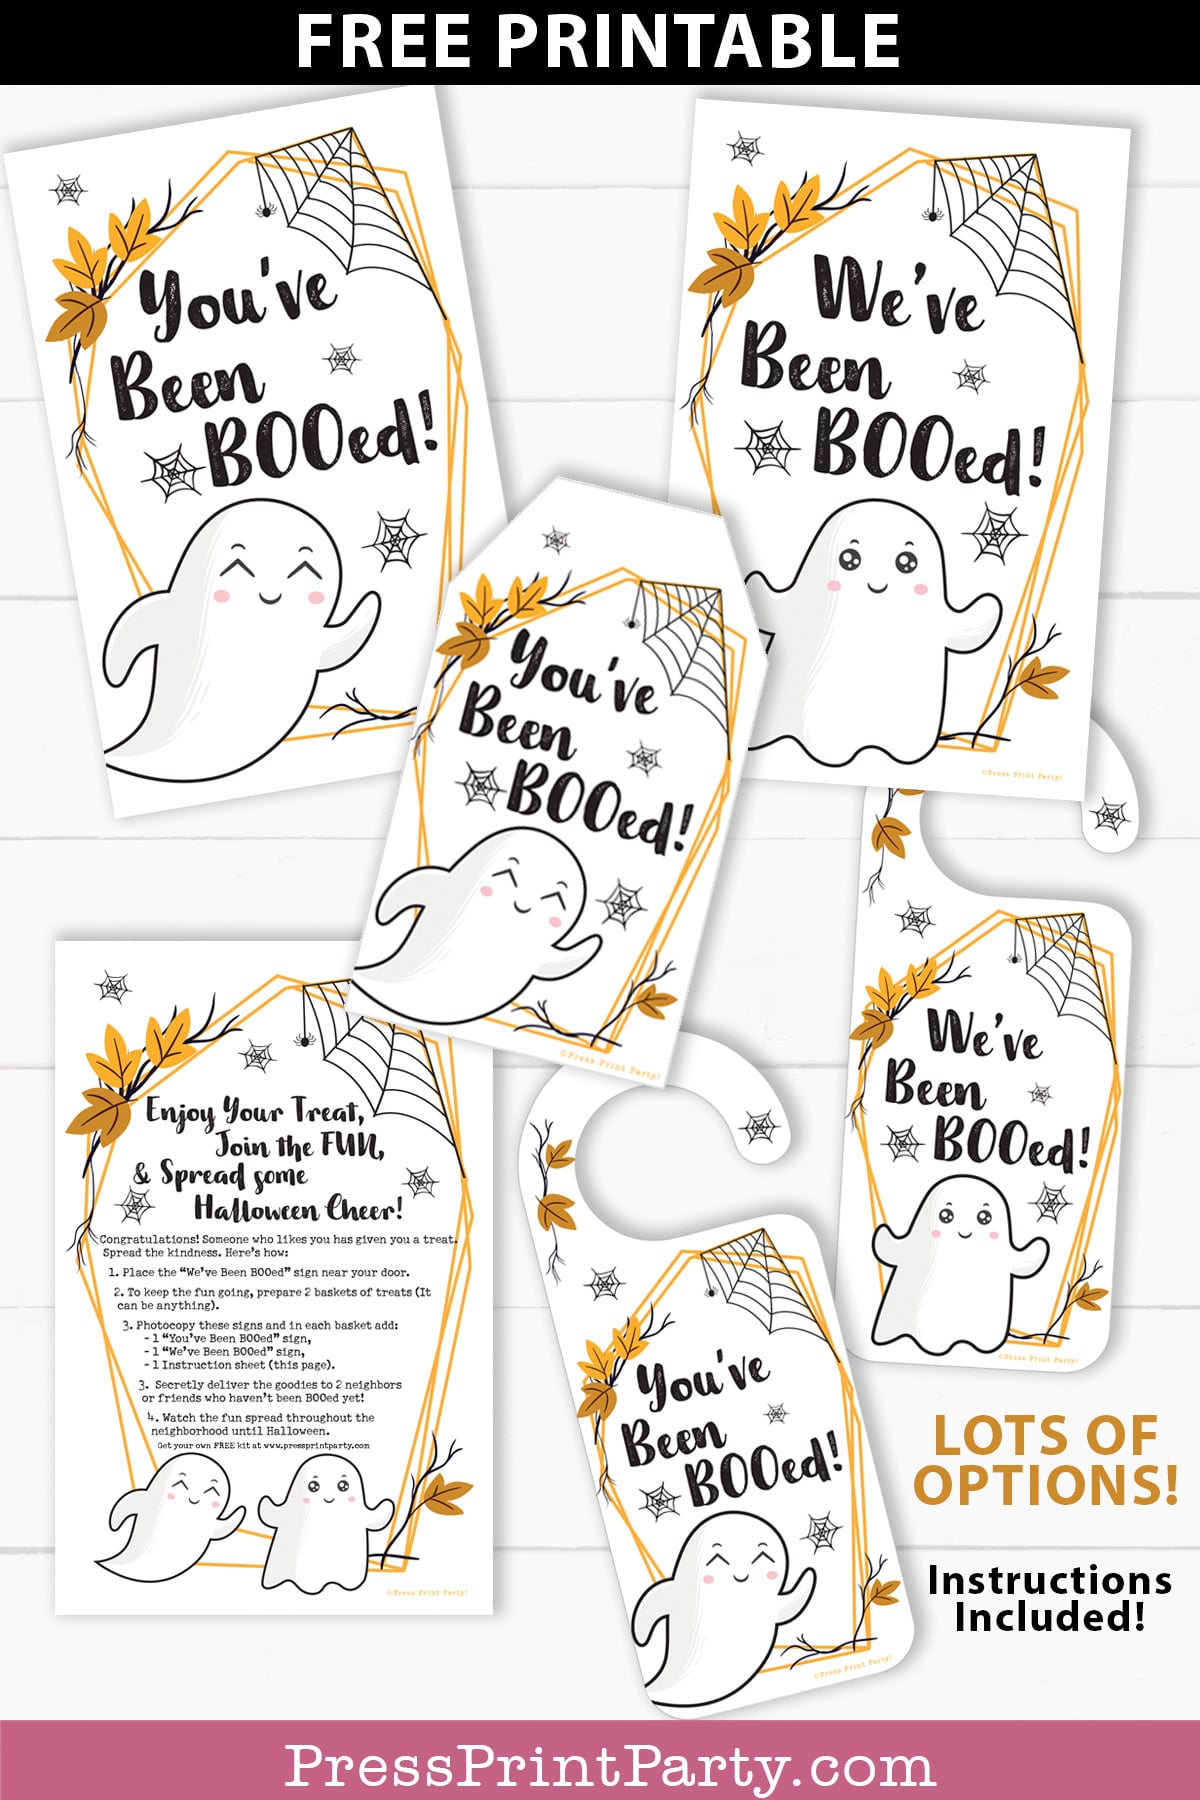 You've been booed sign and We've been booed sign halloween game with instructions Press Print Party!